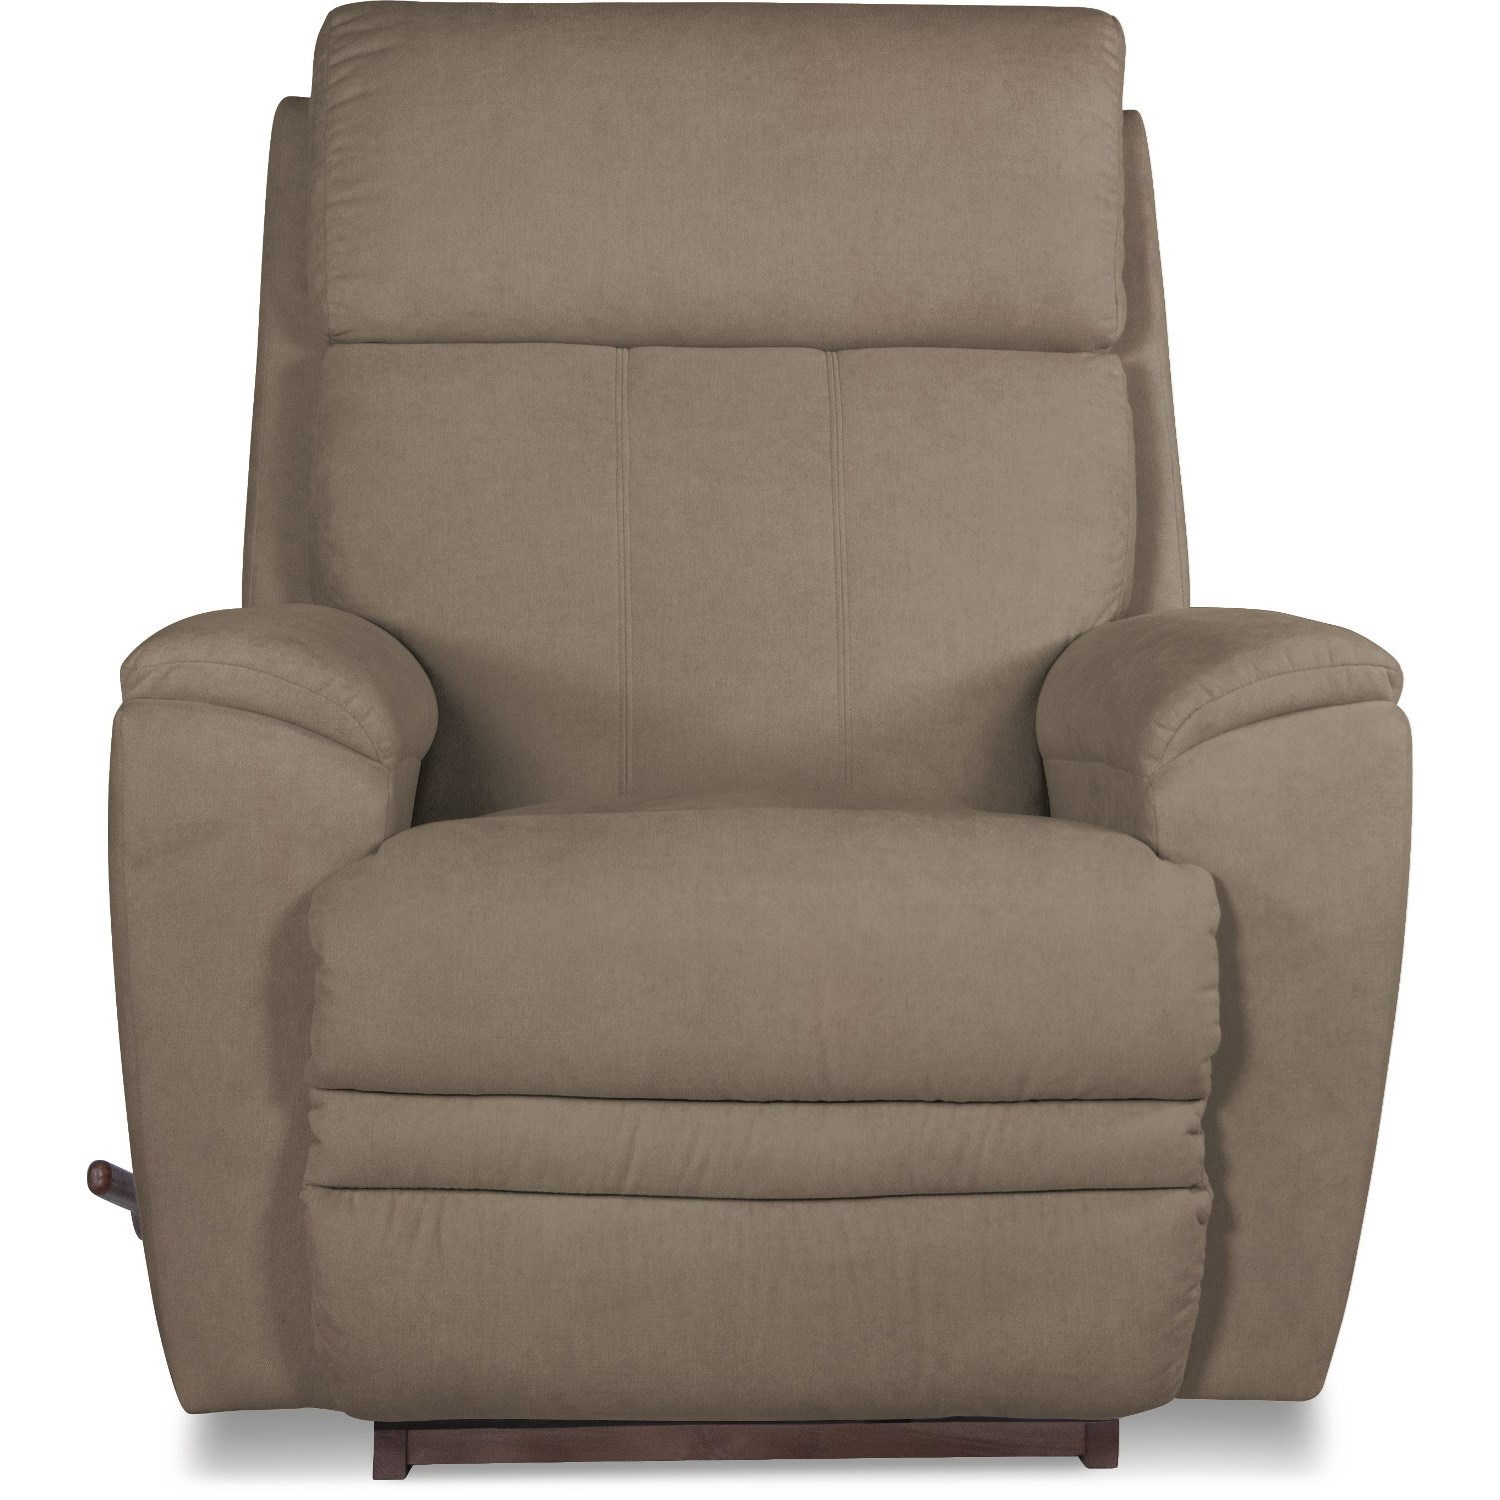 Talladega Rocking Recliner  by La-Z-Boy at SuperStore